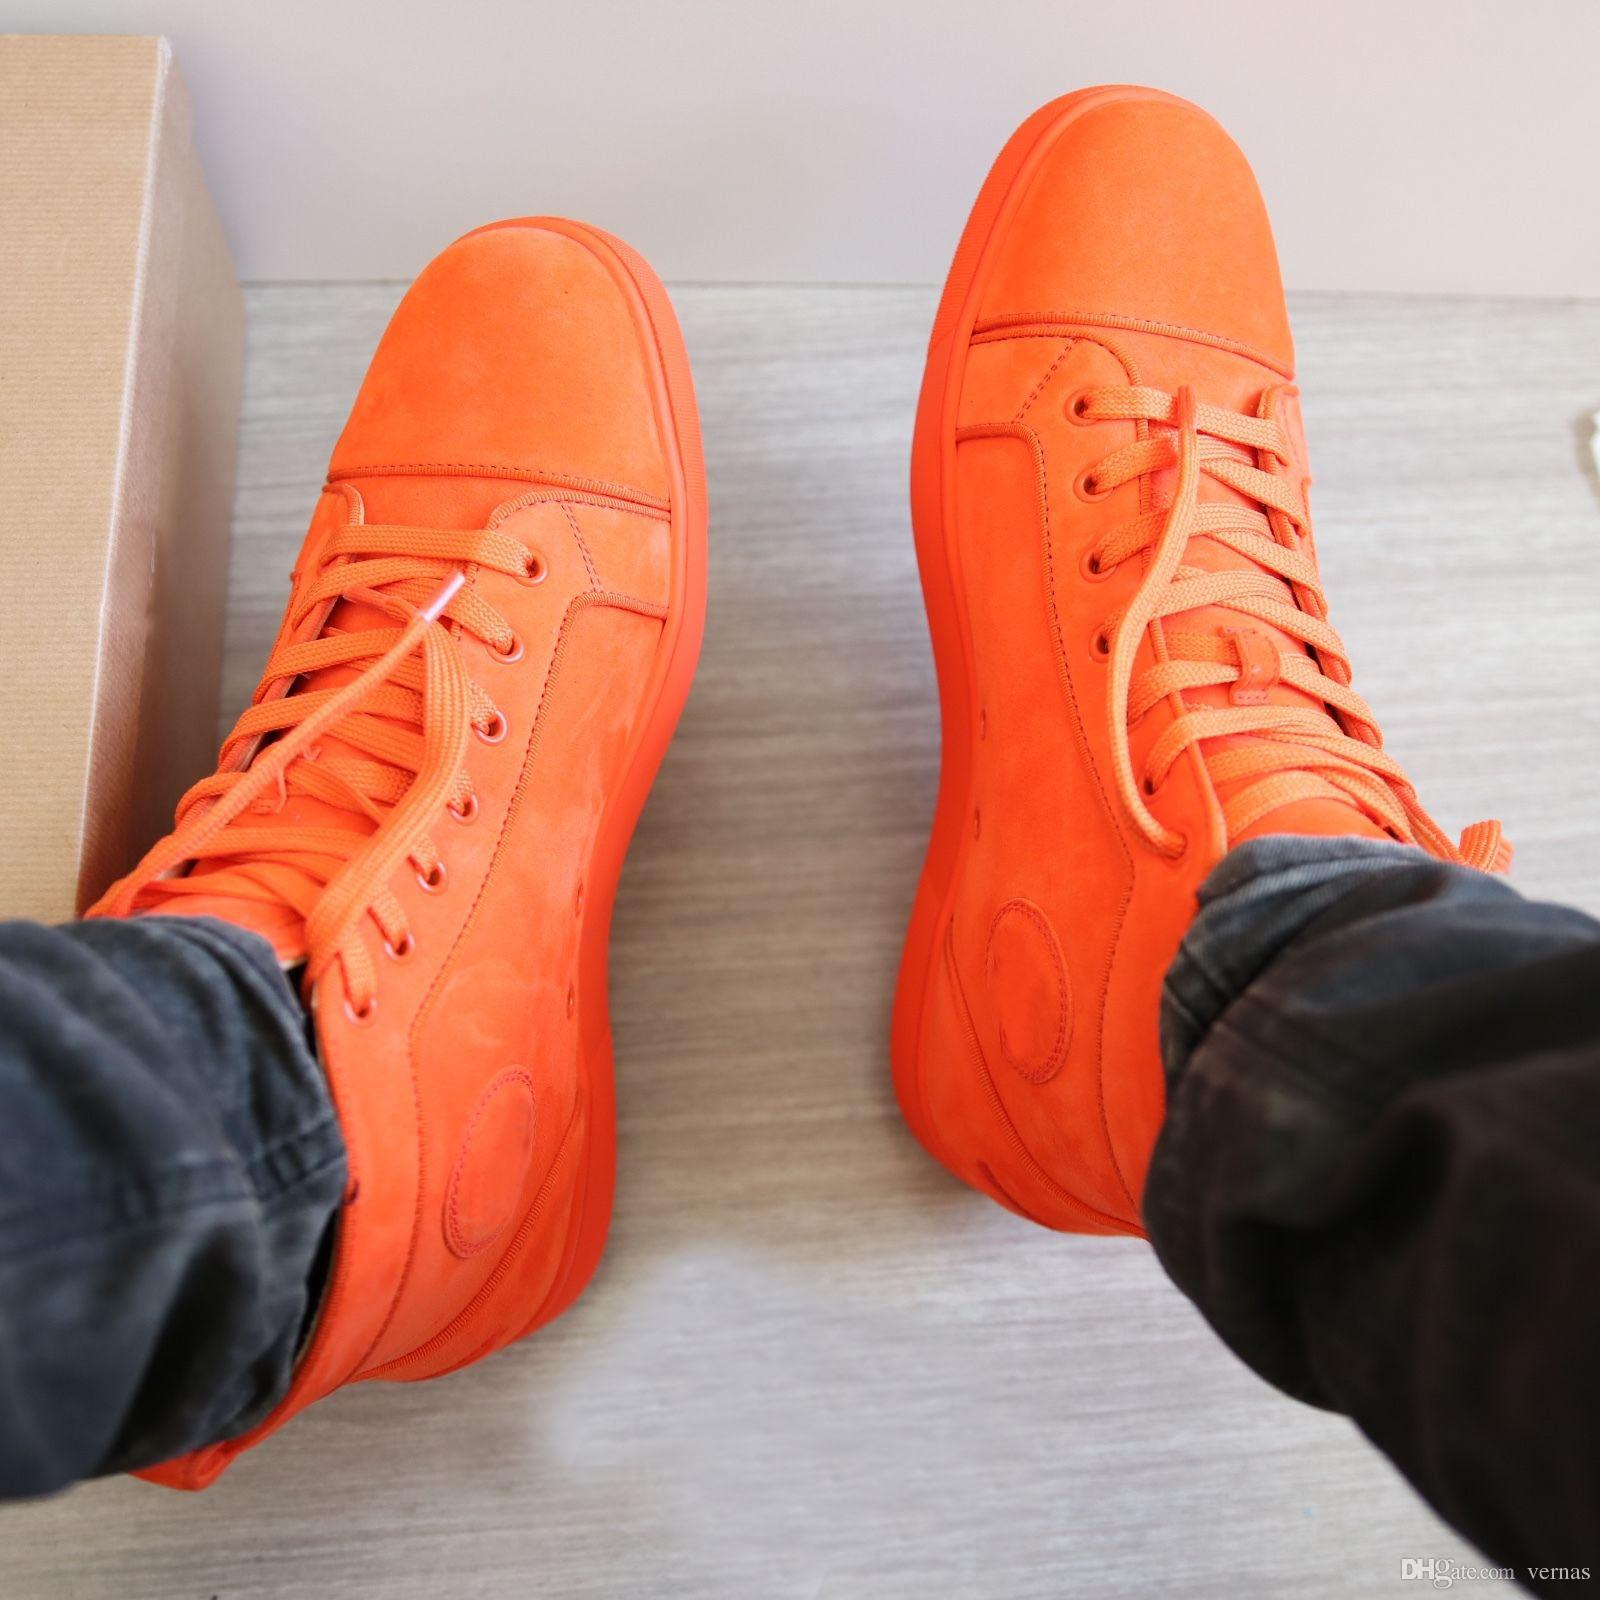 b2ae2b4265e6 Super Quality Orange Suede Leather Sneakers Shoes Red Bottom Women Men  Fashion Hightop Casual Walking Party Dress Trainer Size 35 47 Mens Loafers  Buy Shoes ...